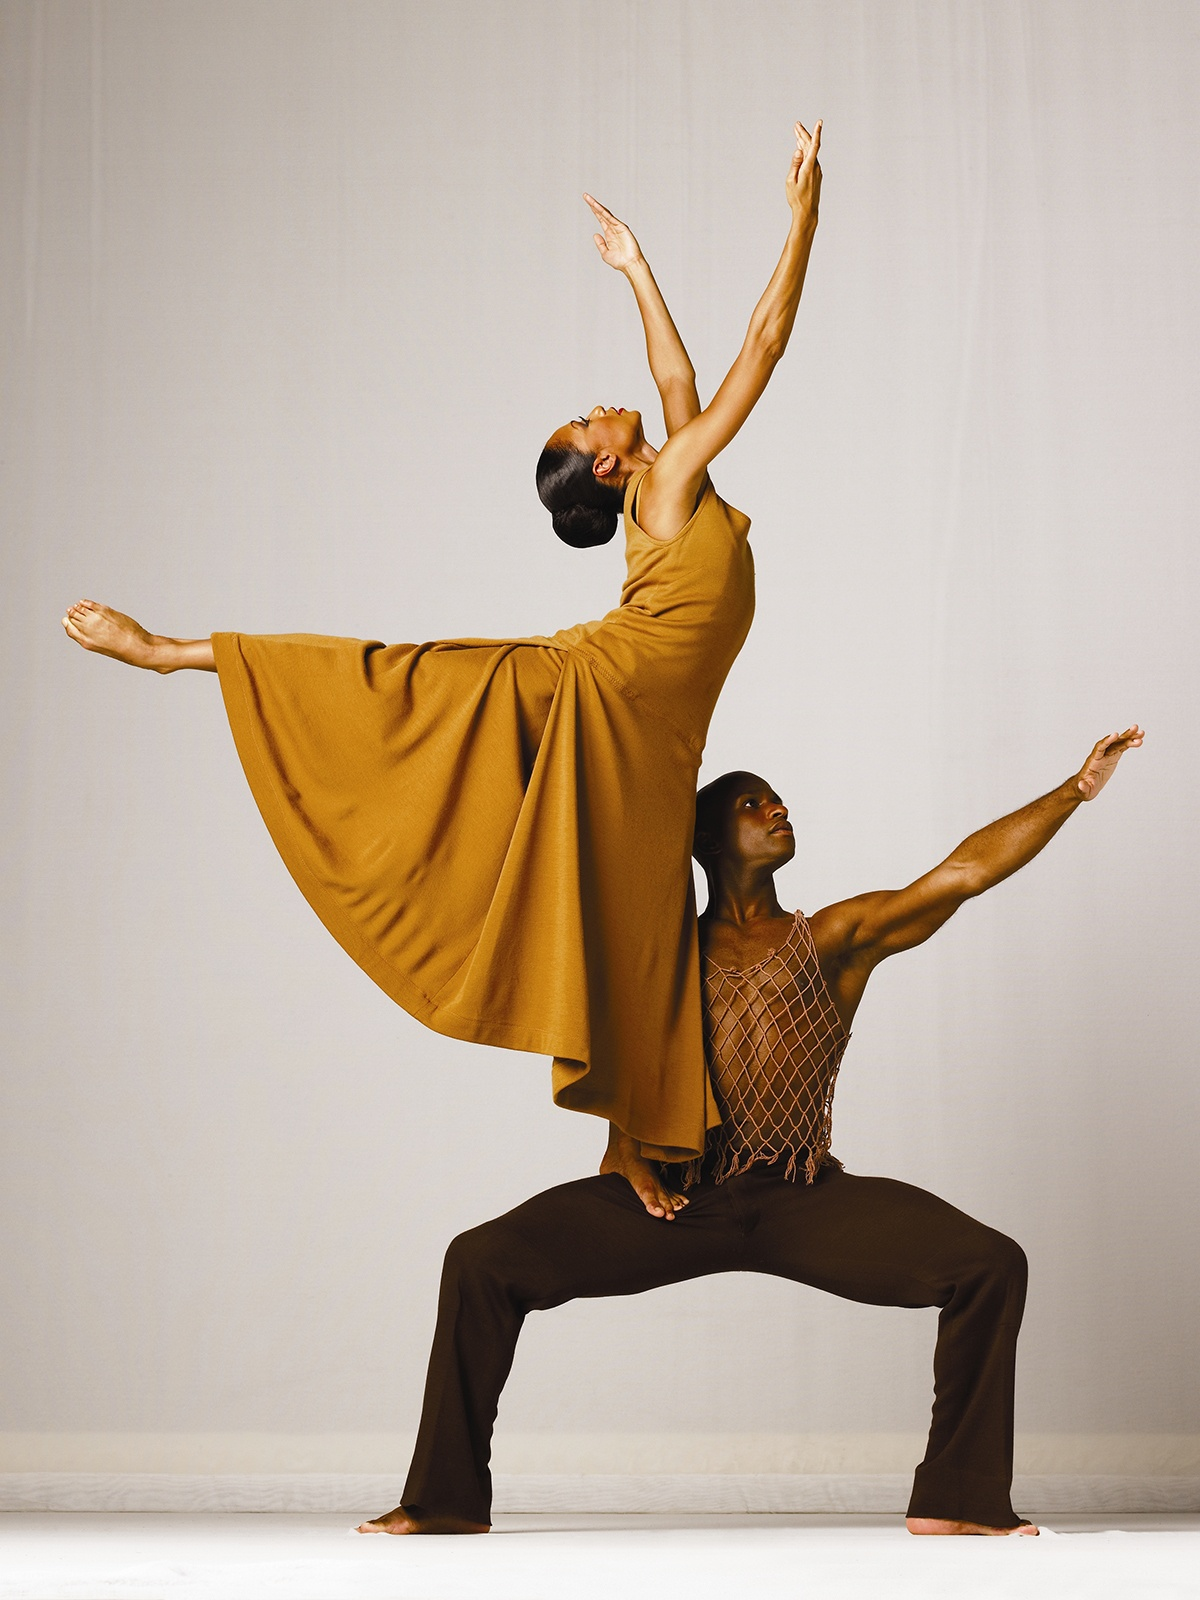 Alvin Ailey American Dance Theater's Linda Celeste Sims and Glenn Allen Sims in Alvin Ailey's Revelations. Photo by Andrew Eccles (150 dpi)